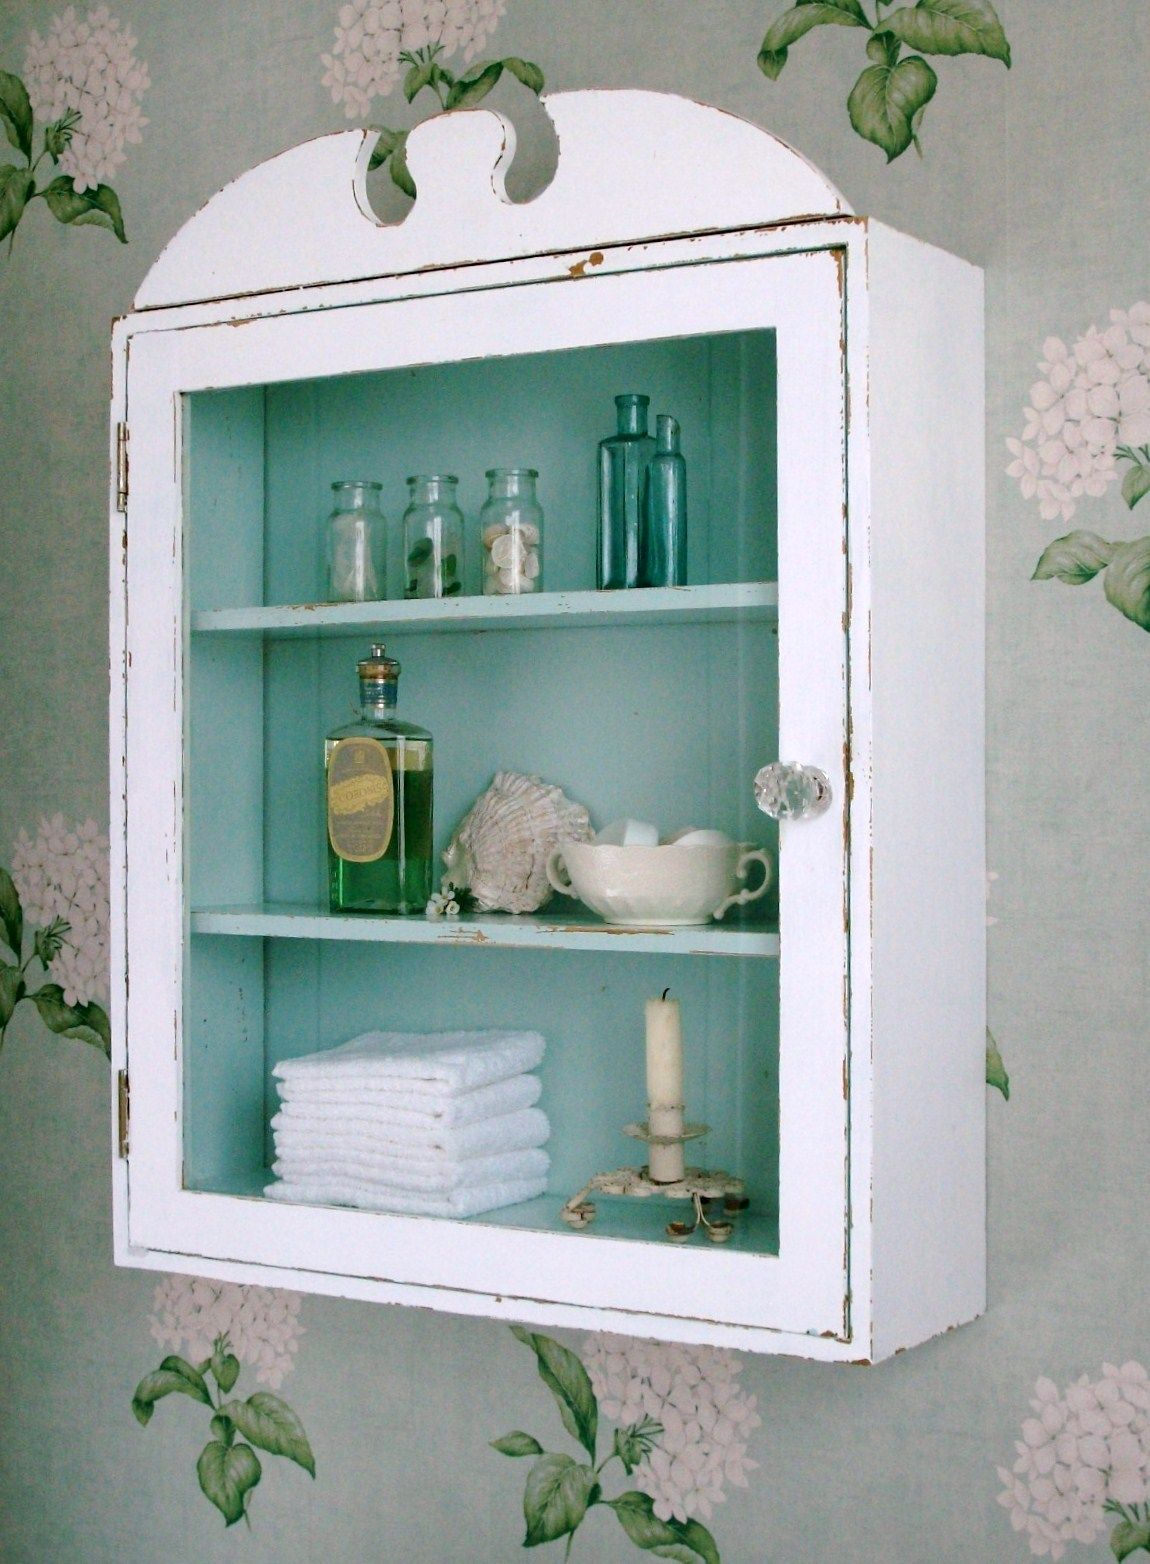 Shabby chic bathroom storage - Find This Pin And More On Storage Shelving